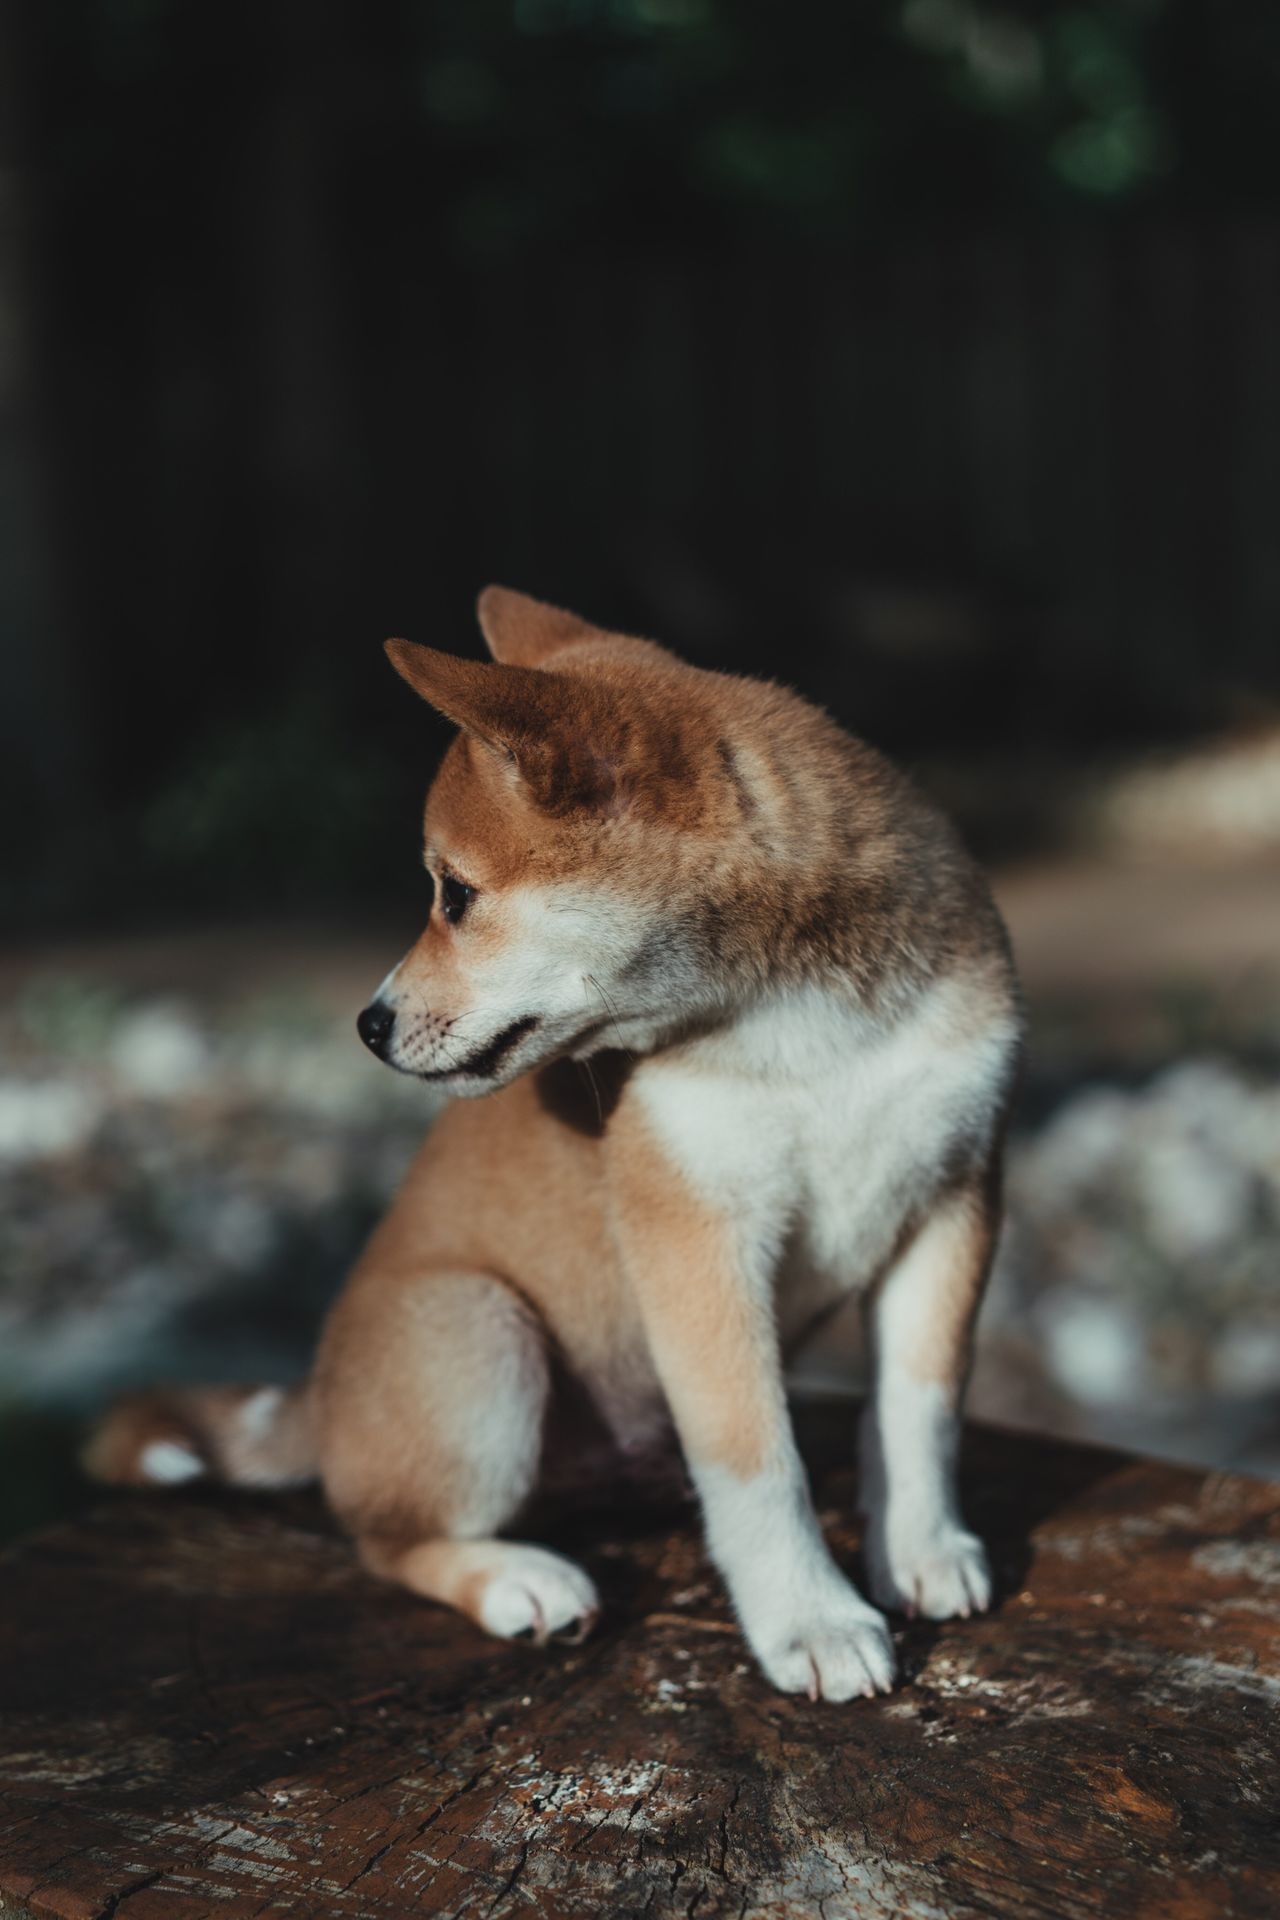 Animal Themes One Animal Pets Mammal Domestic Animals Dog Focus On Foreground Full Length No People Day Sitting Outdoors Close-up